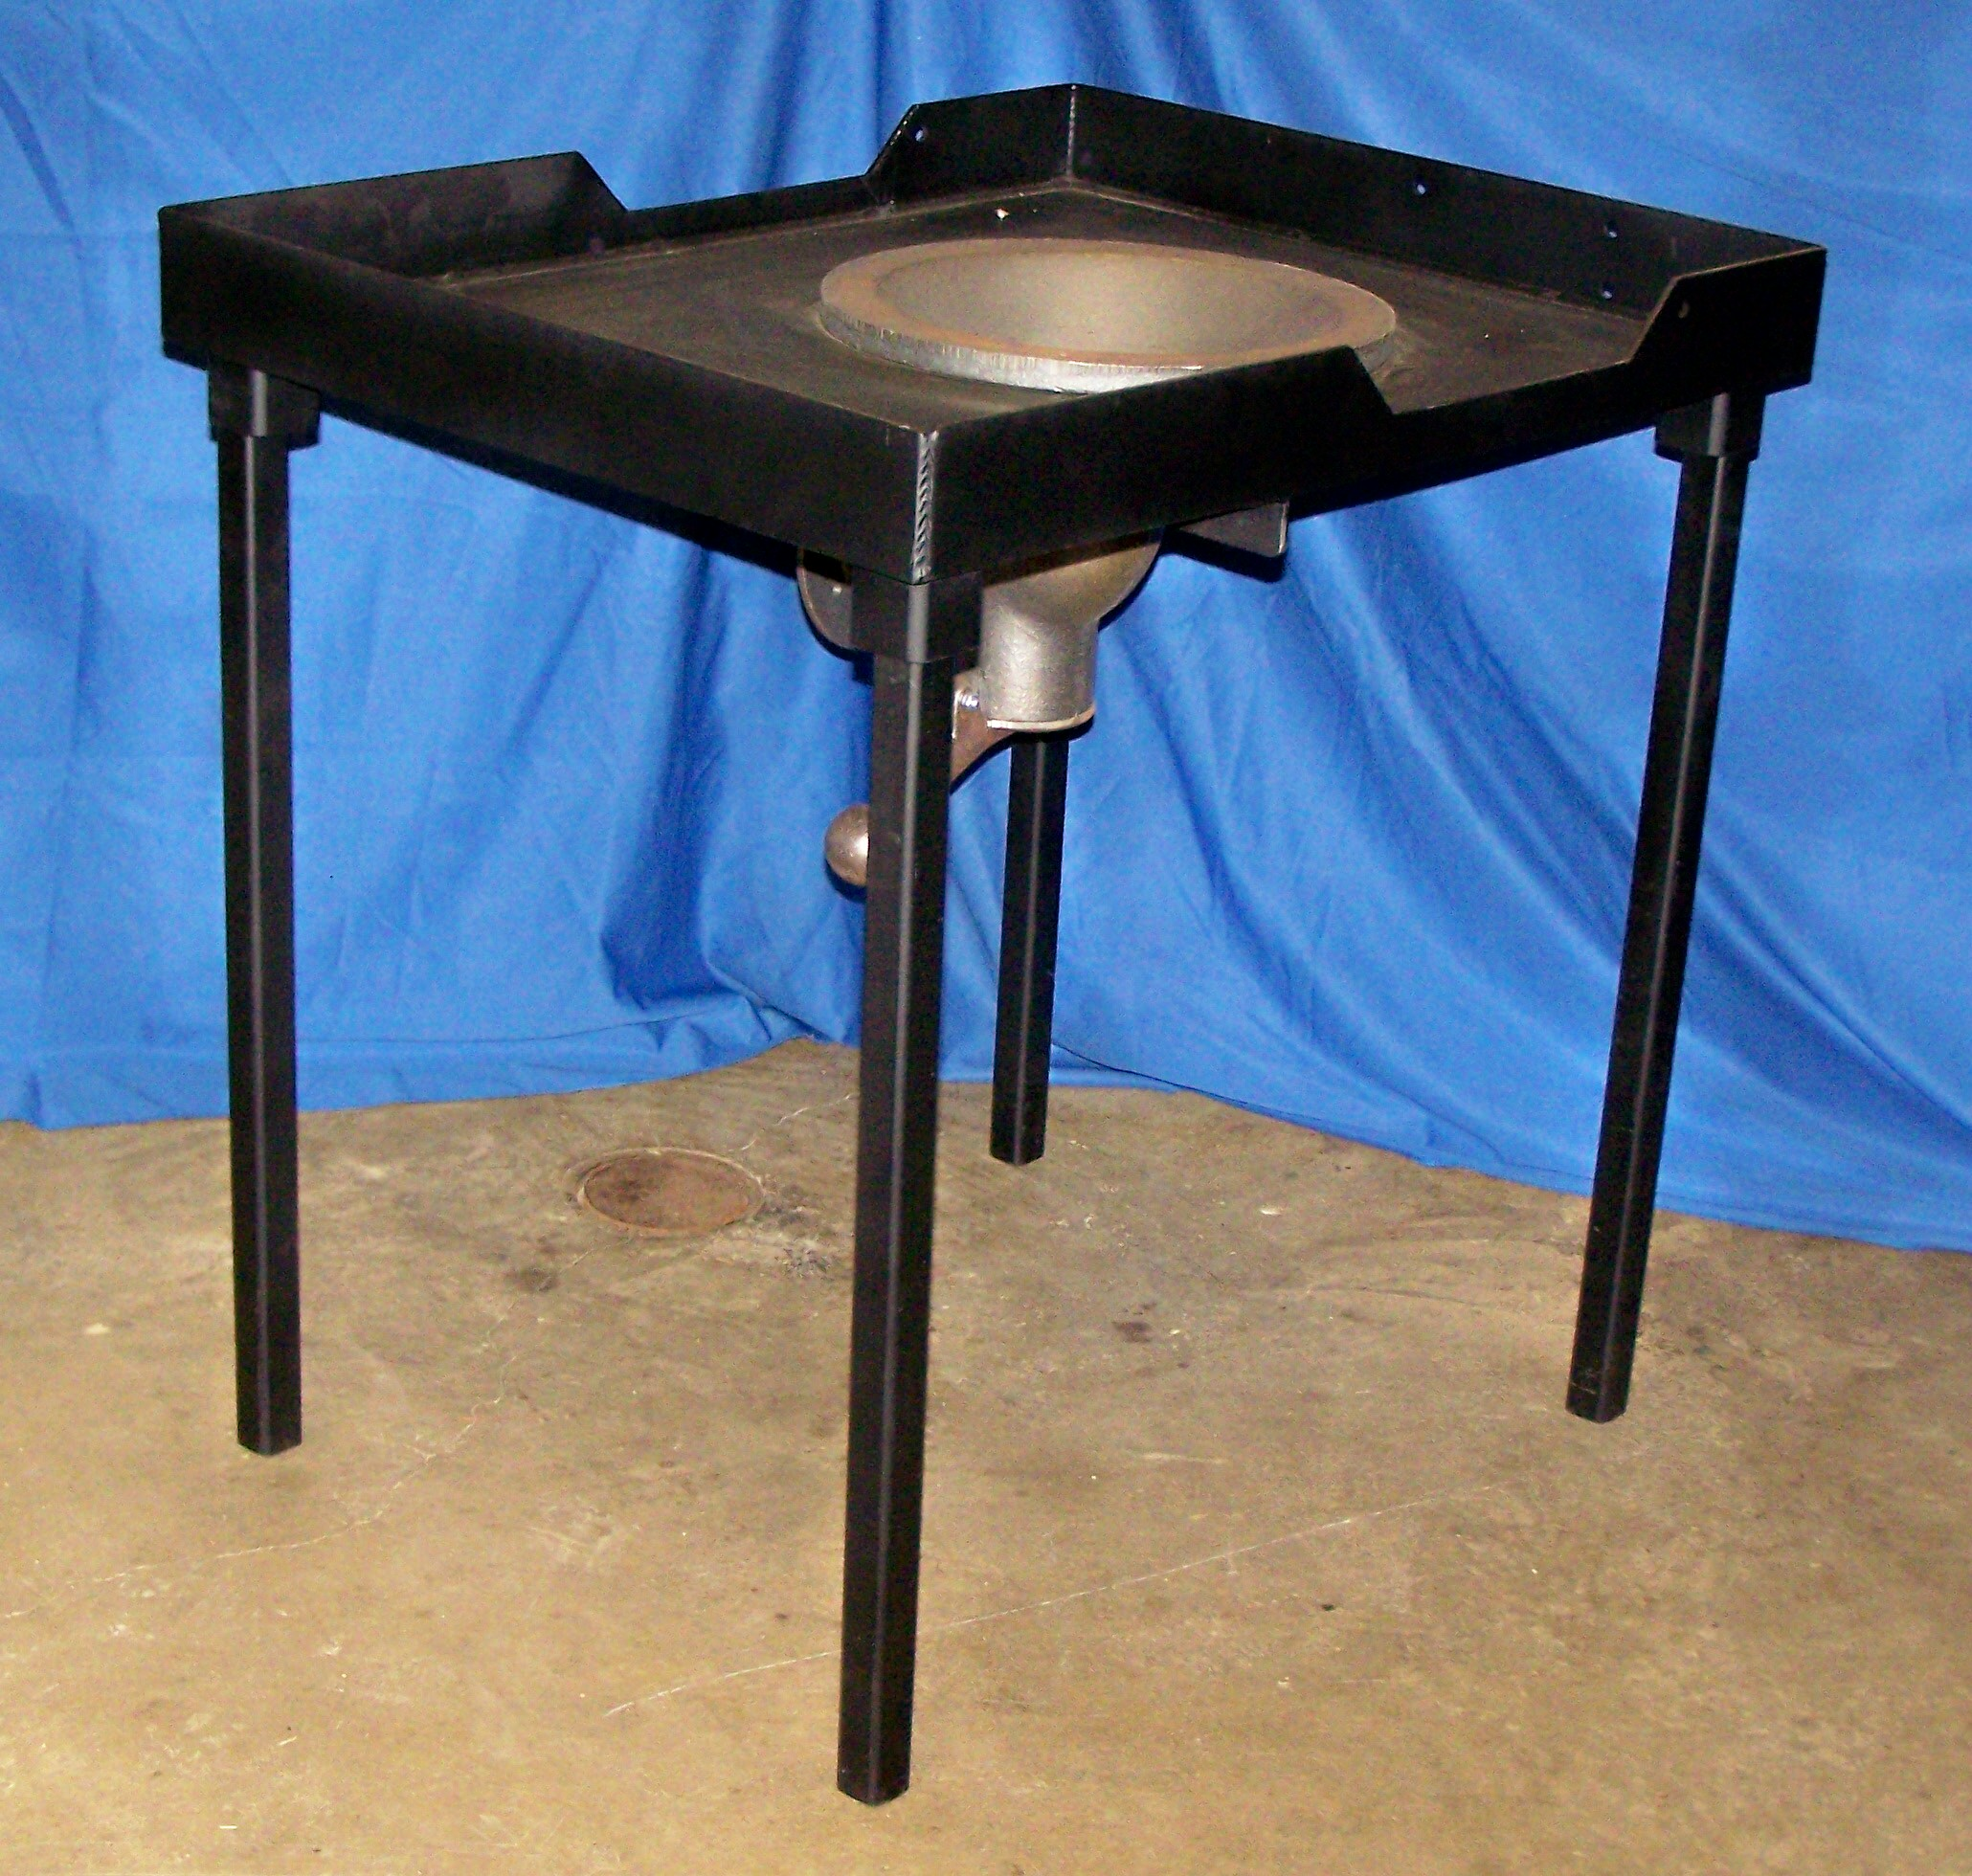 Centaur C37 Floor Model Coal Forge with Coke Firepot - Eligible for Free Shipping.  See Home Page for full details